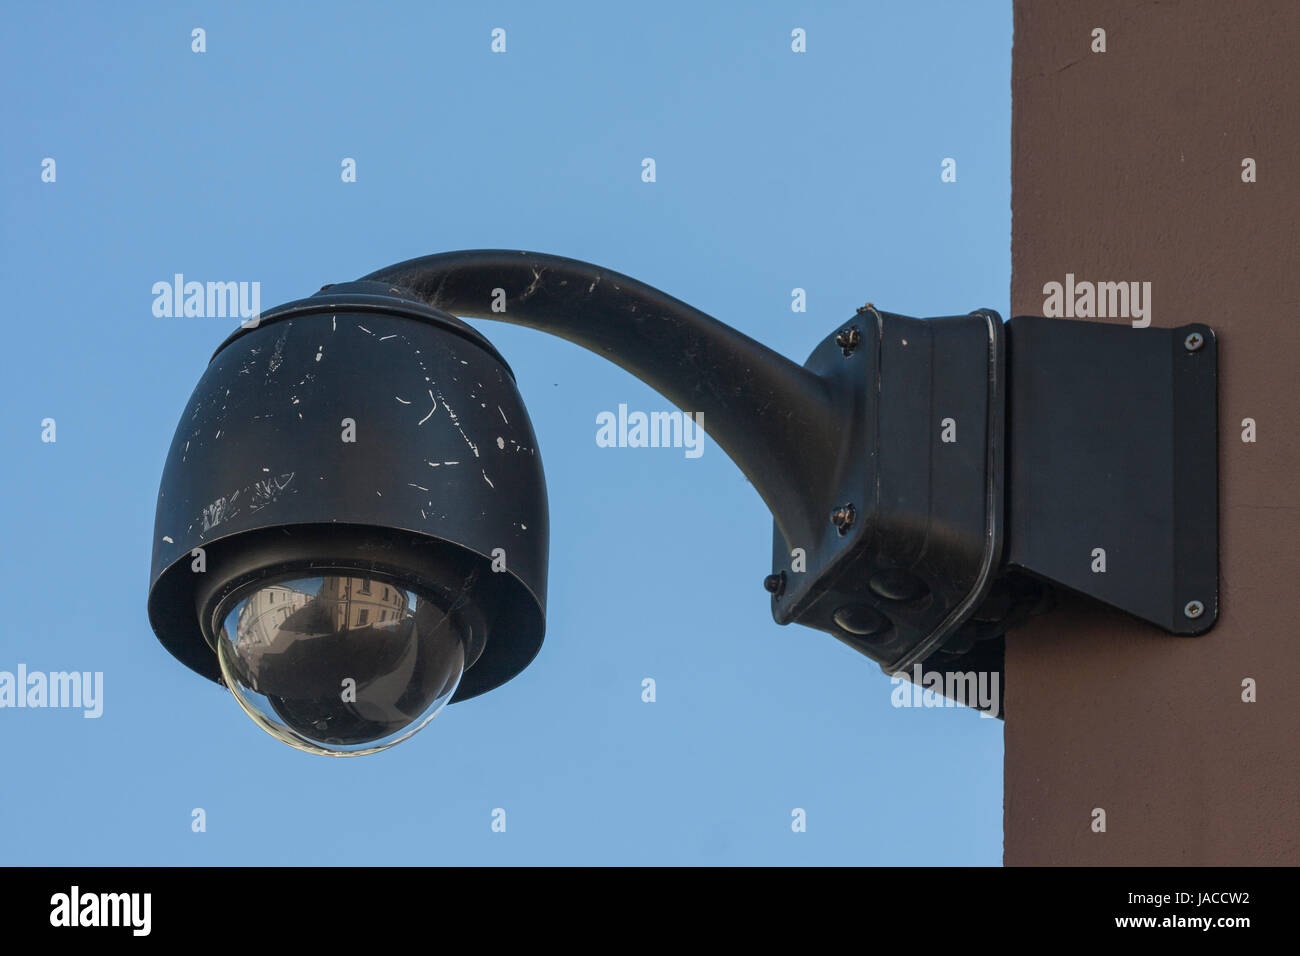 Overhead Surveillance CCTV security camera 360 degree - Stock Image